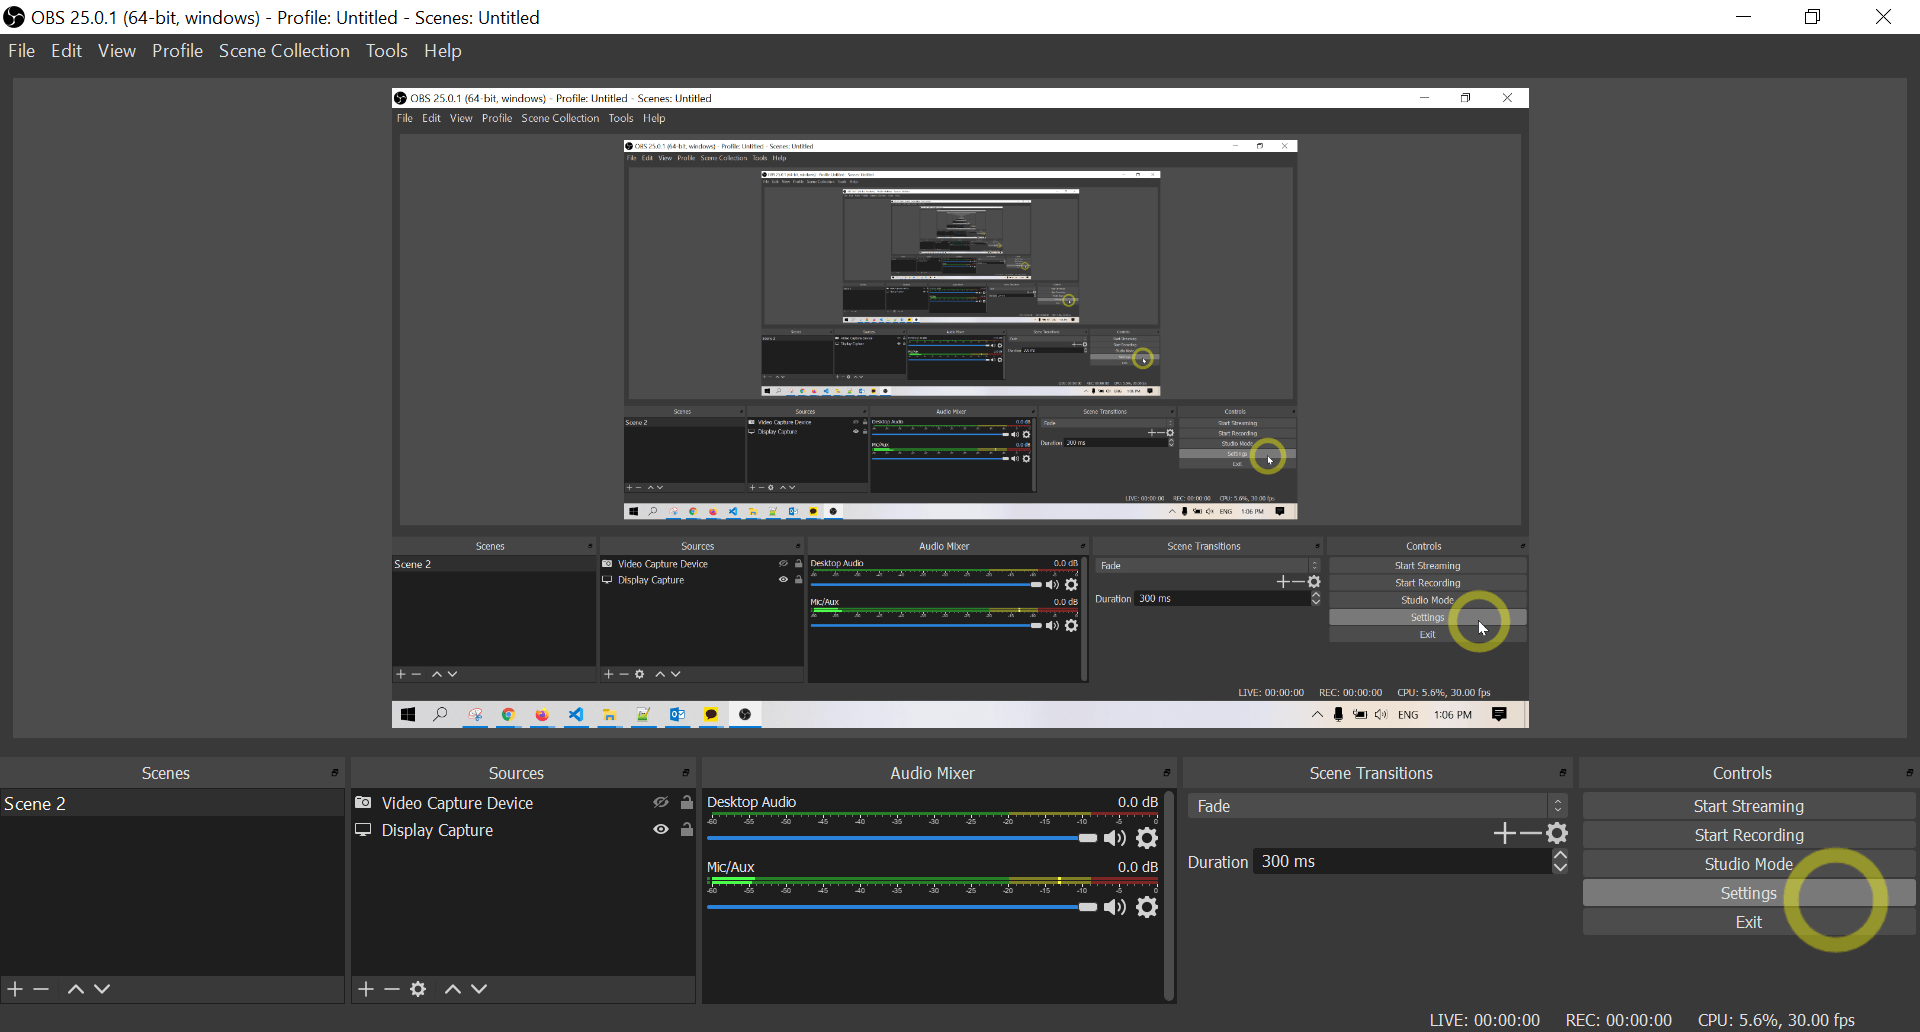 Location of Settings in OBS Studio